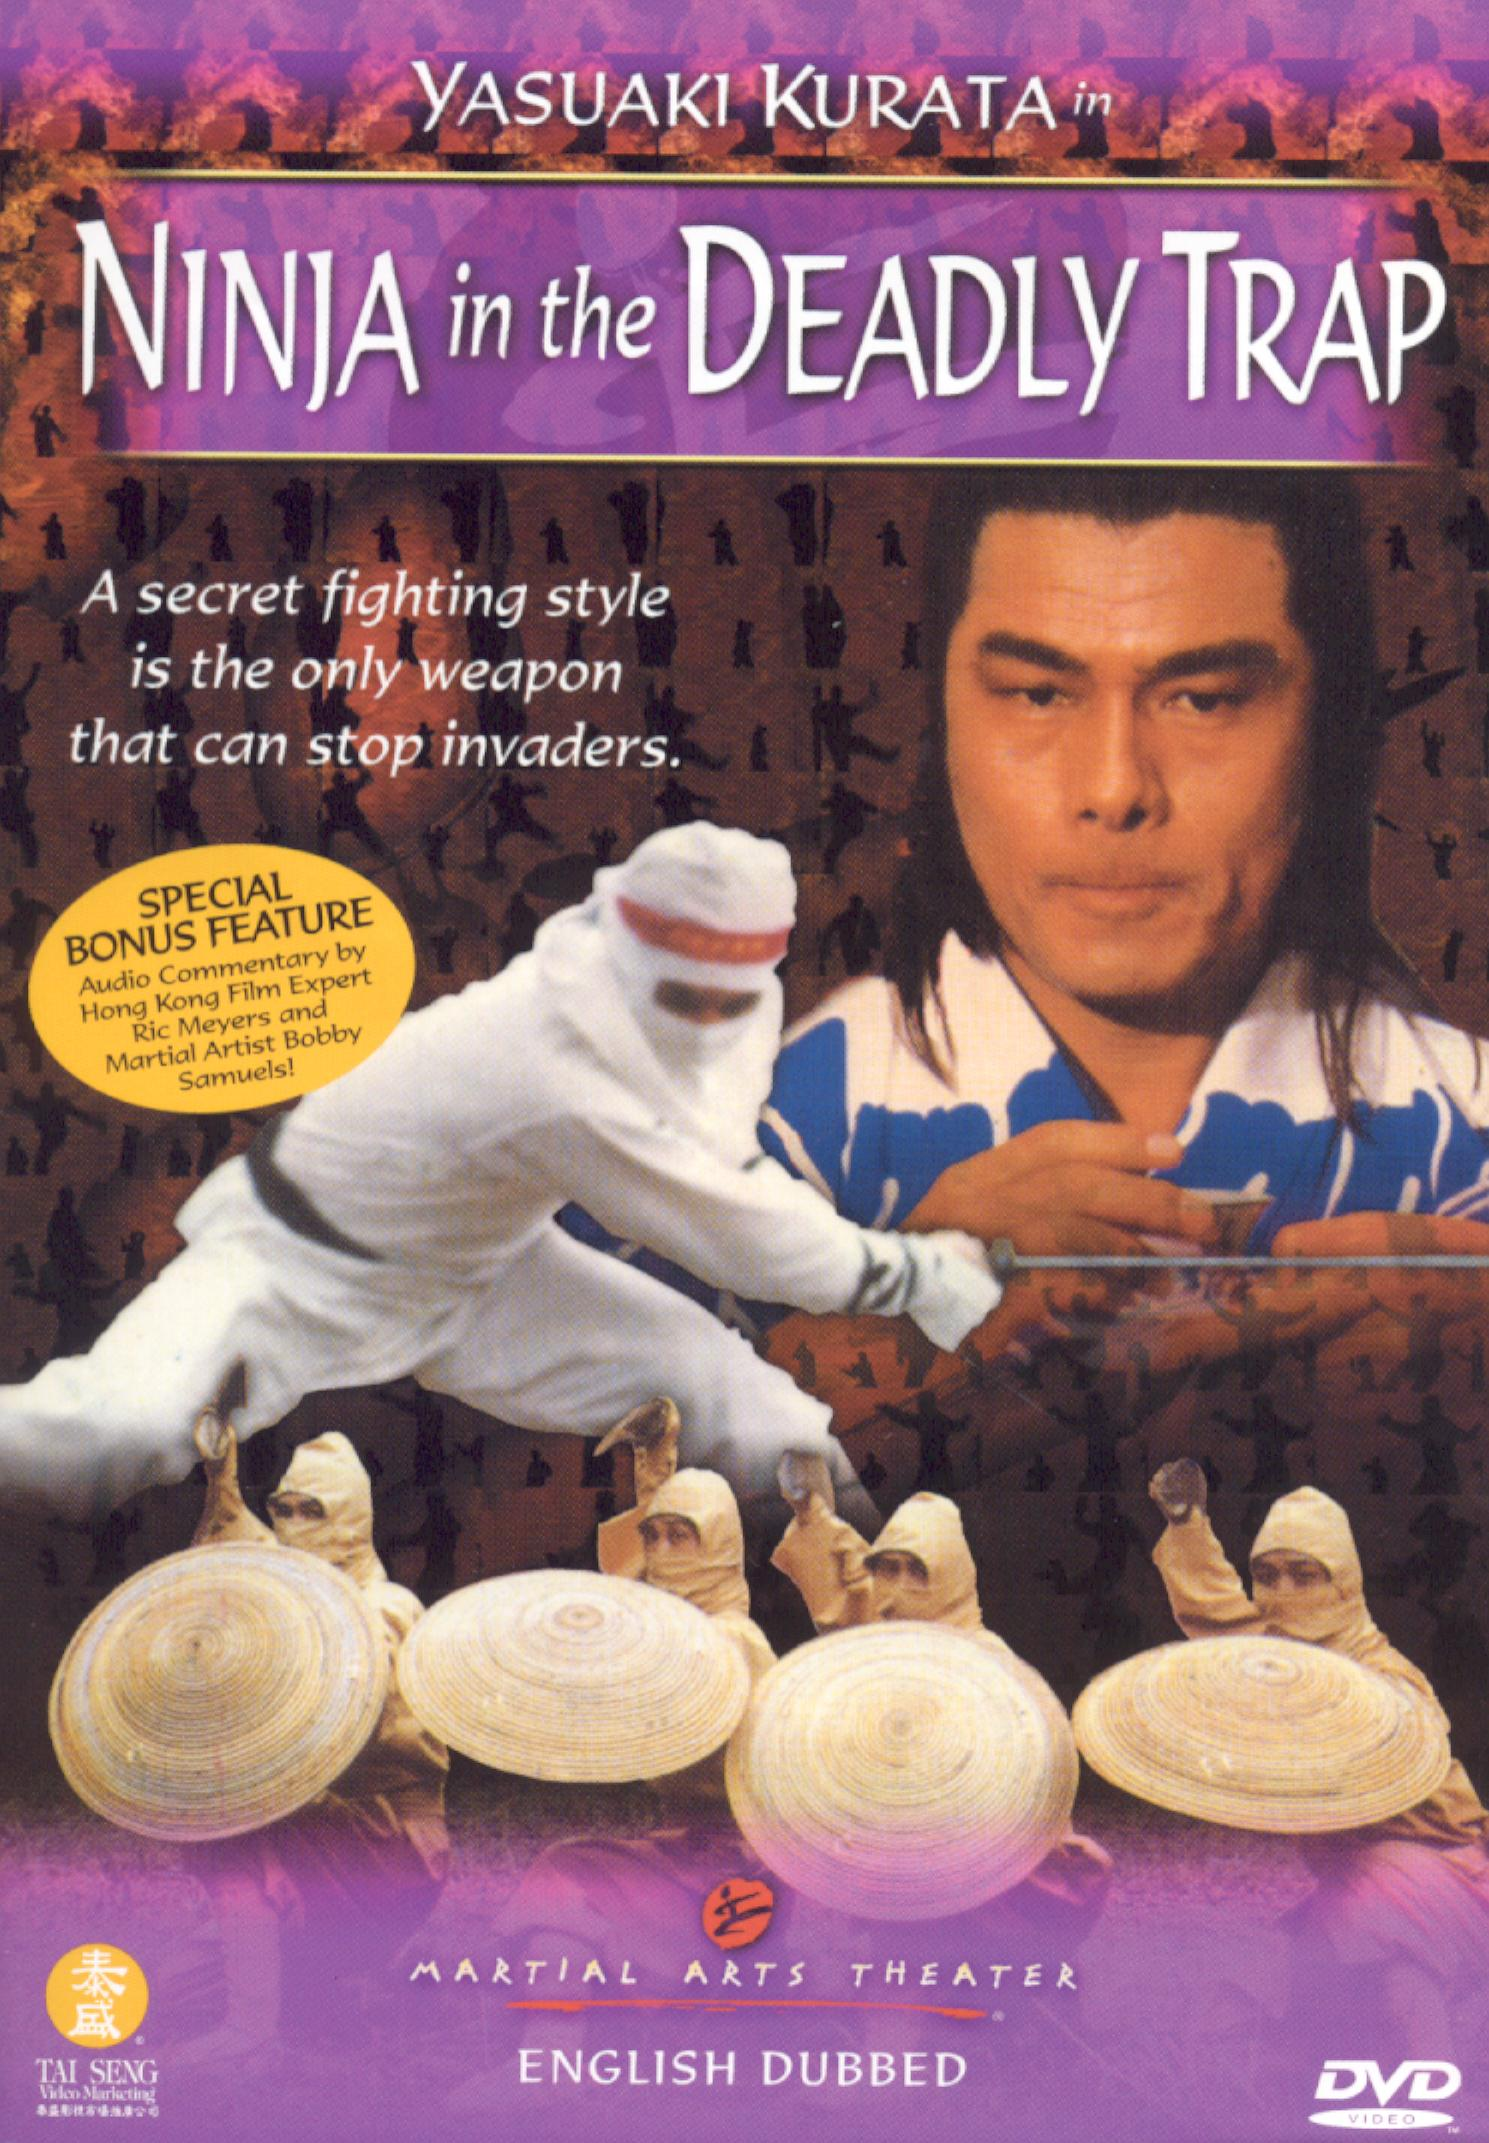 Ninja in the Deadly Trap